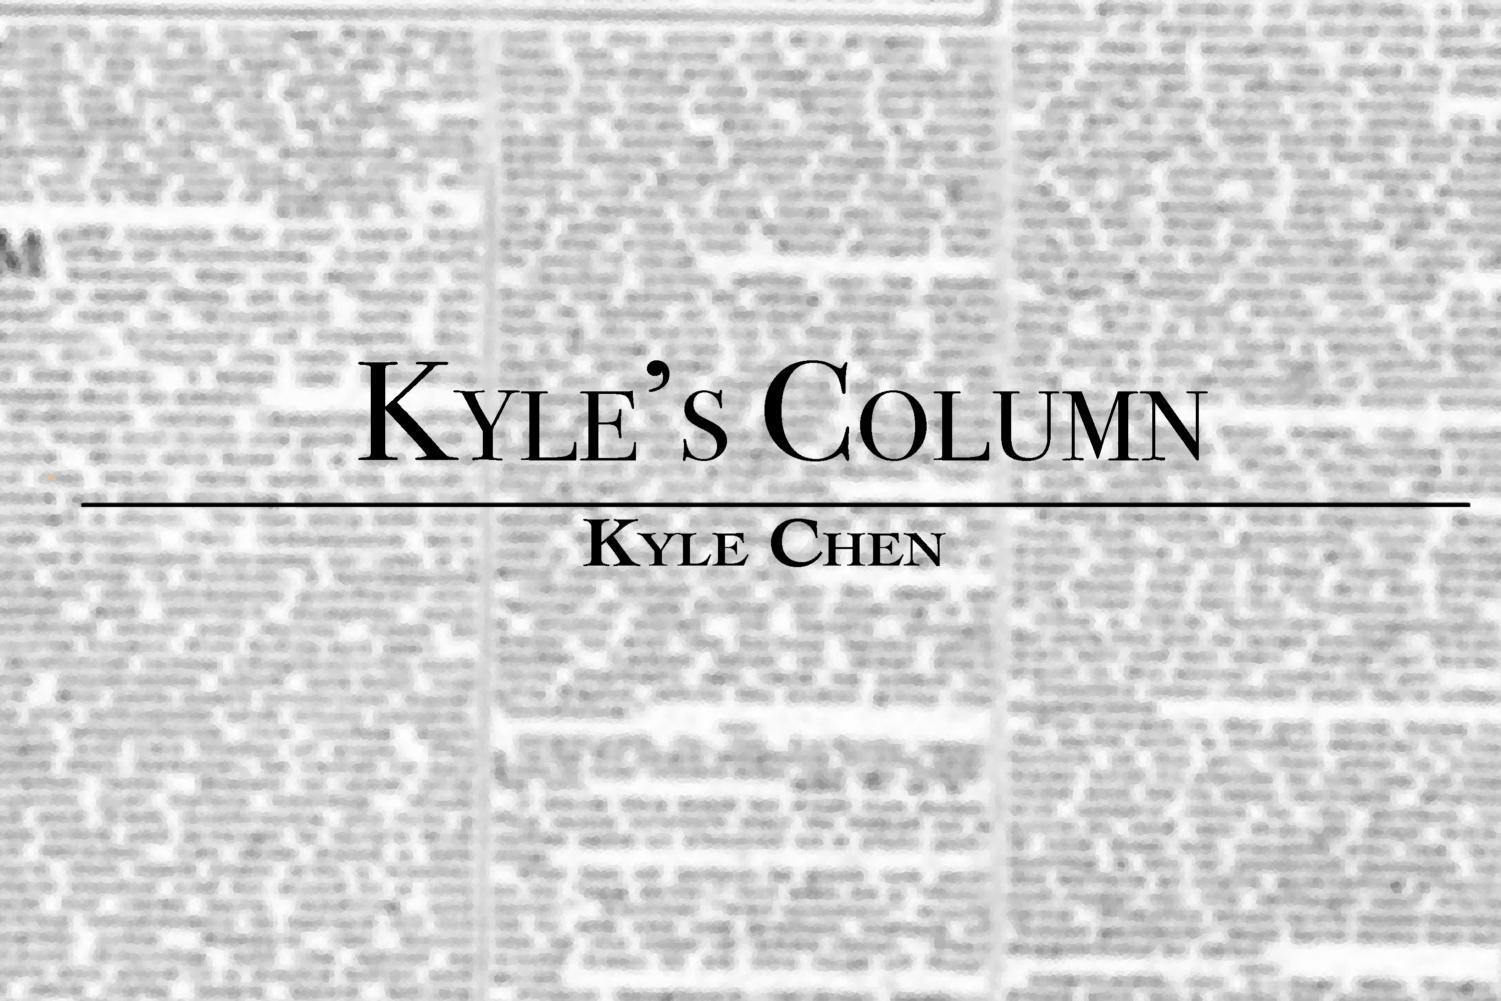 In the latest installment of Kyle's Column, WSPN's Opinions Editor Kyle Chen reflects upon the lessons that come with having a cold.